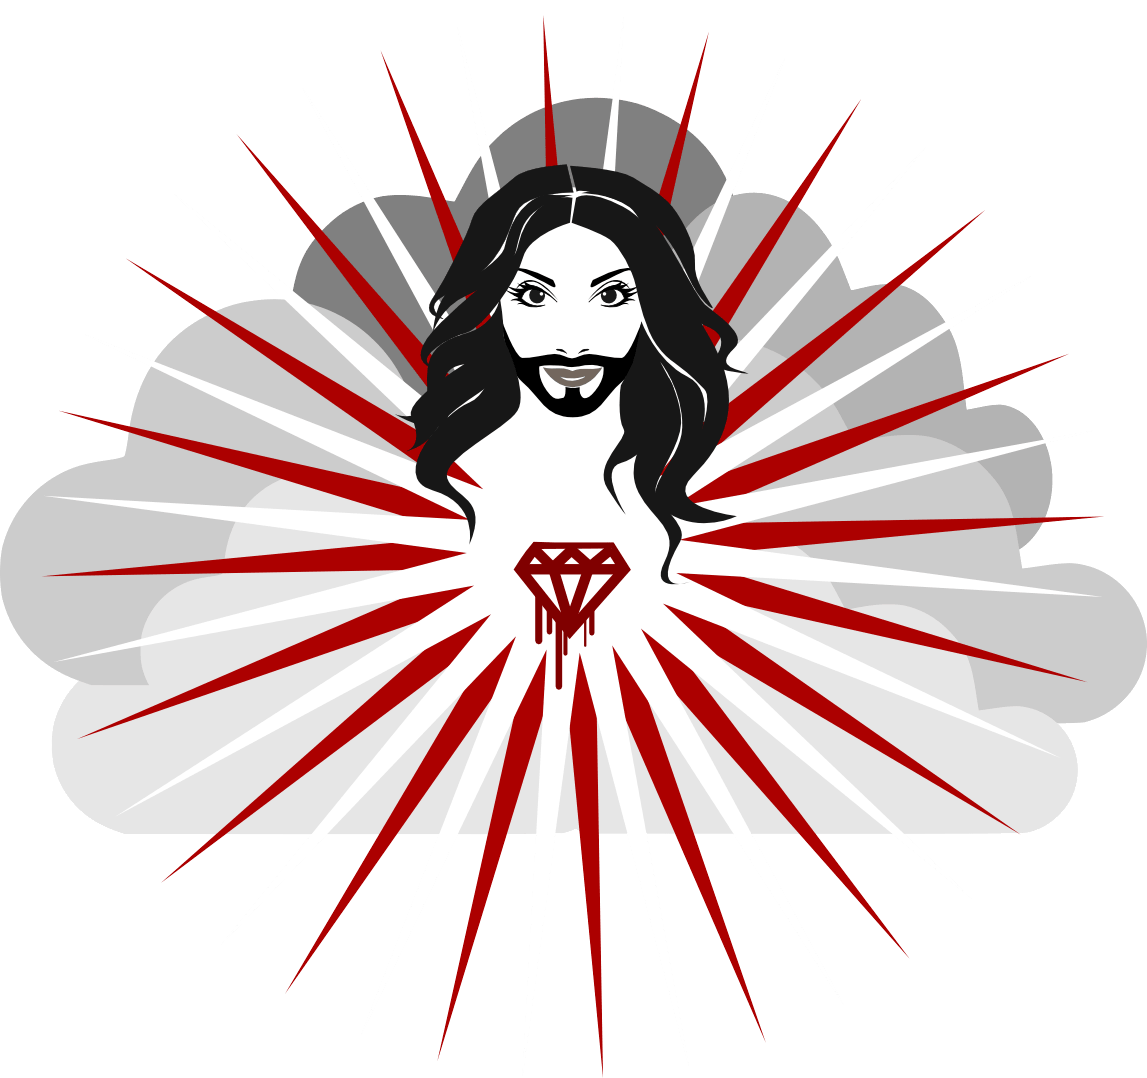 conchita-in-the-clouds-mafj-alvarez